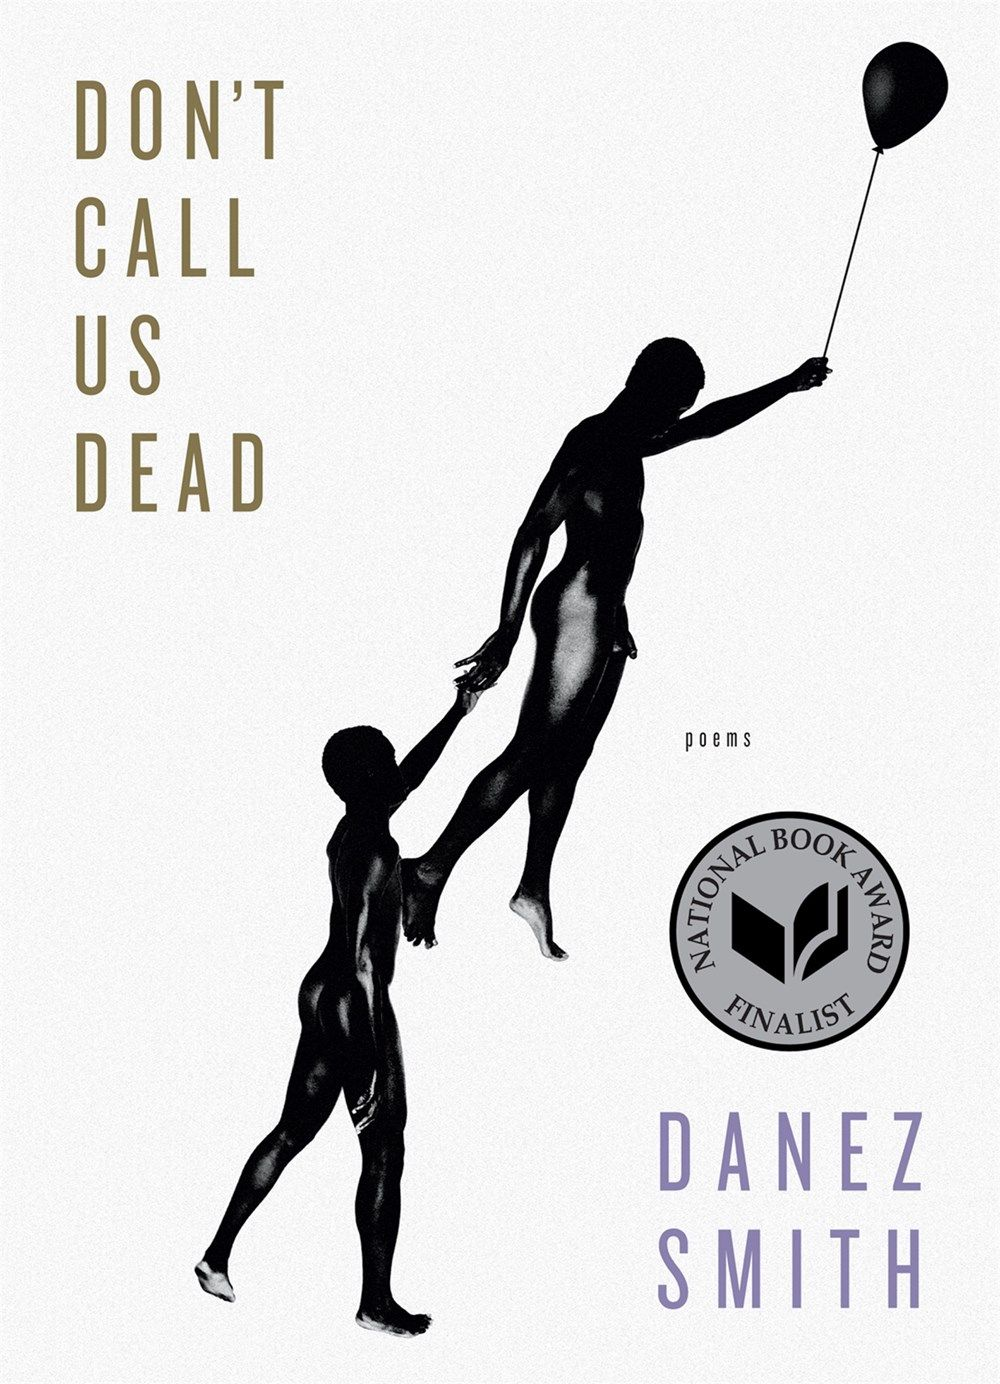 Don't Call Us Dead is an astonishing collection, one that